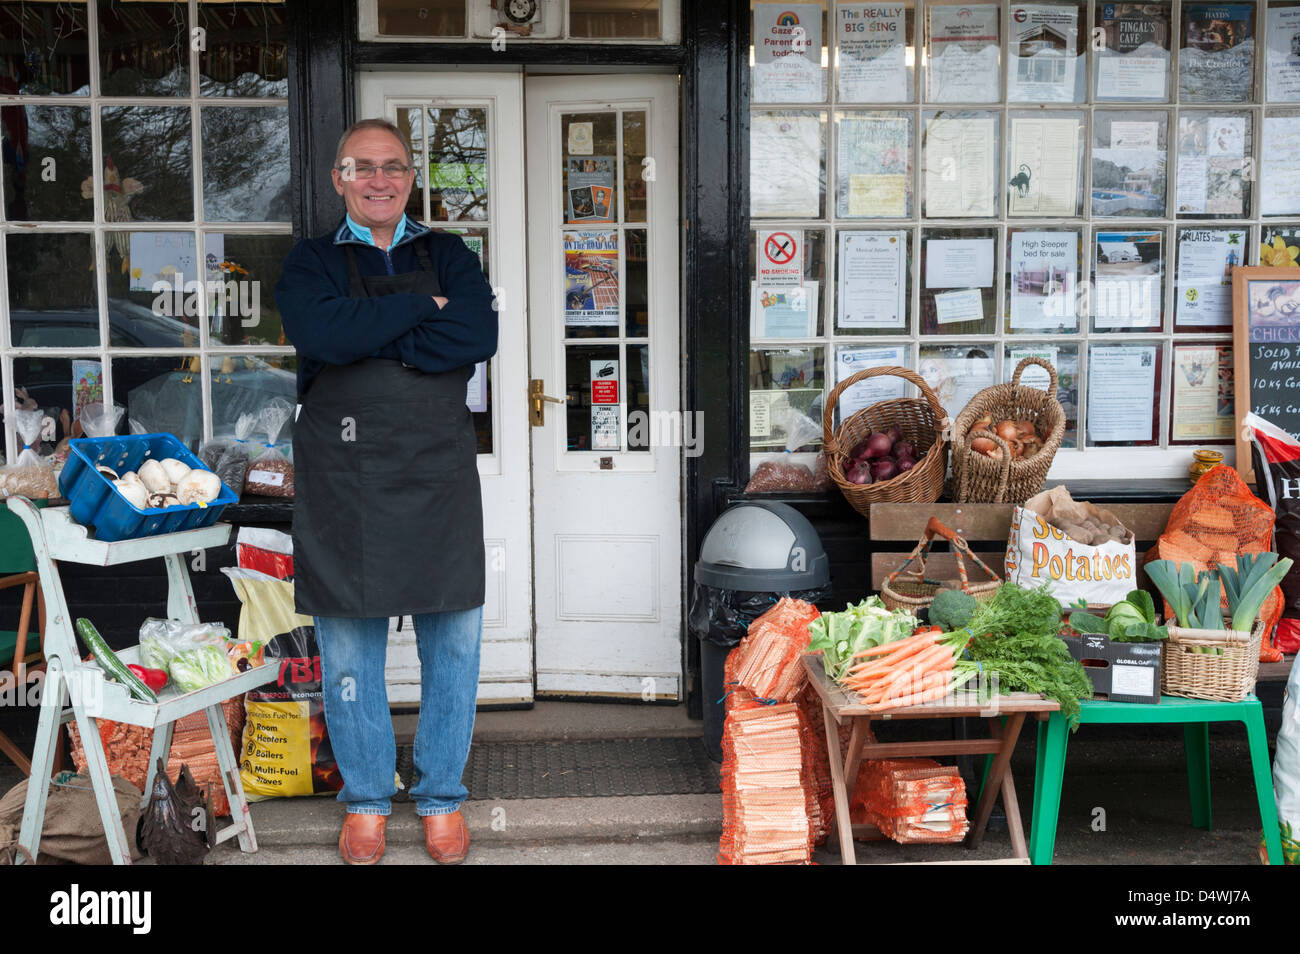 The Moulton village stores a traditional general stores and post office in Suffolk UK with the shopkeeper standing - Stock Image